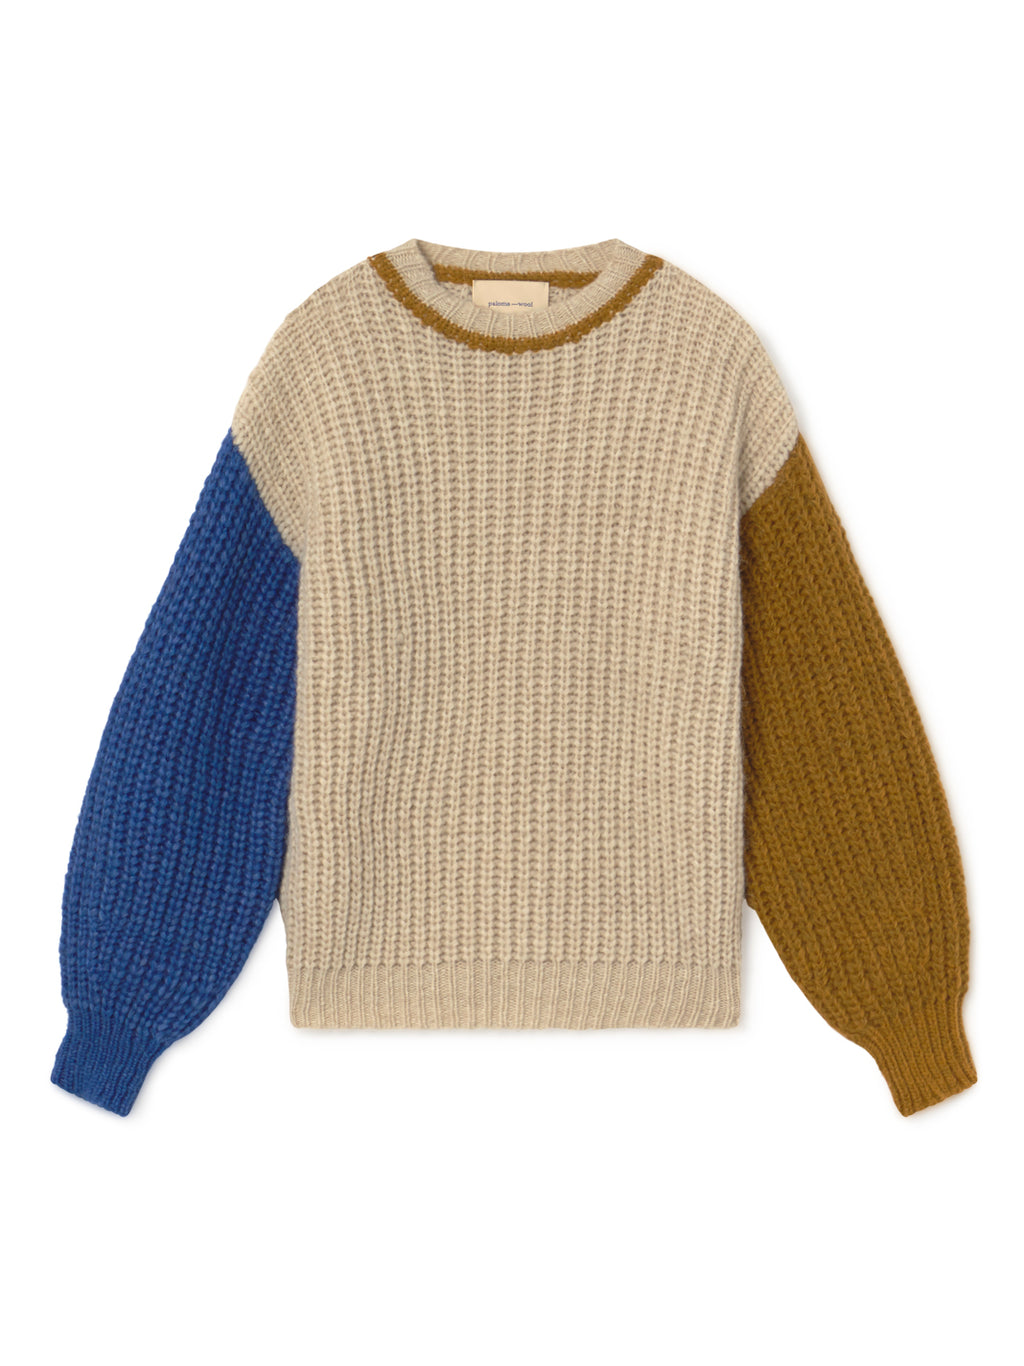 FRIGO - Two Tone Sleeve Sweater